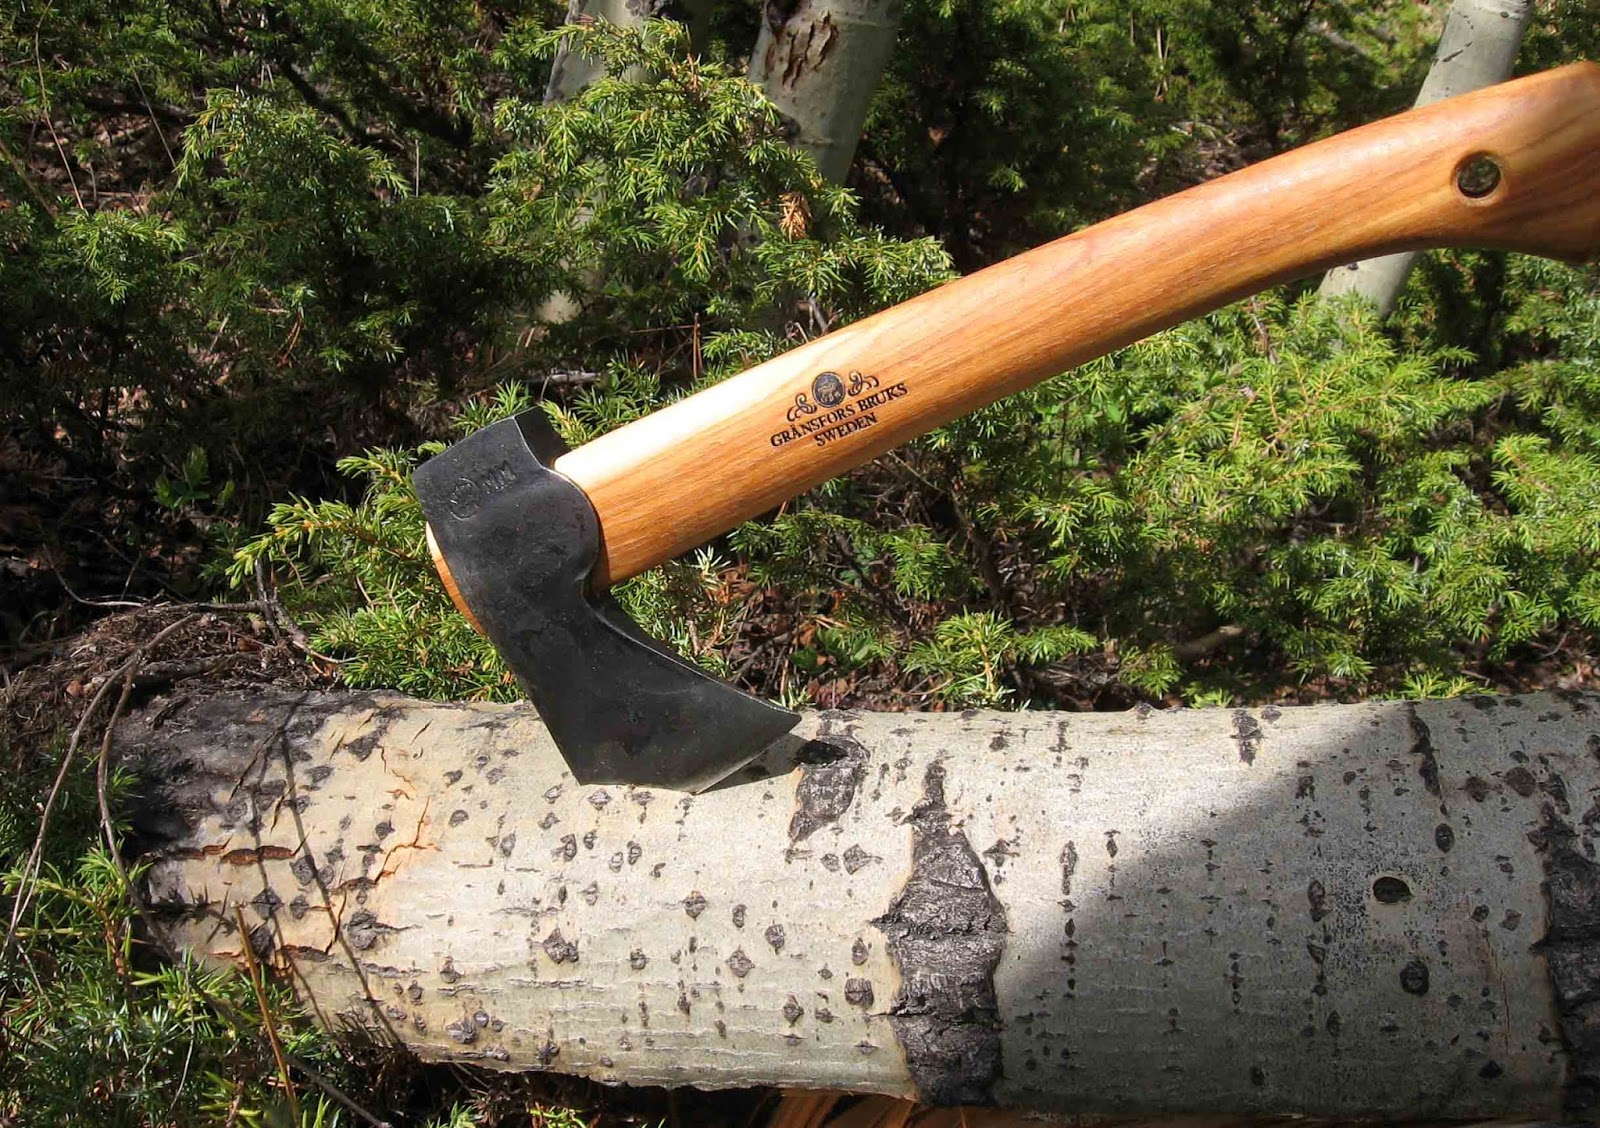 REVIEW The Gransfors Bruks Wildlife Hatchet Finely Crafted By Elves Hiding In Sweden